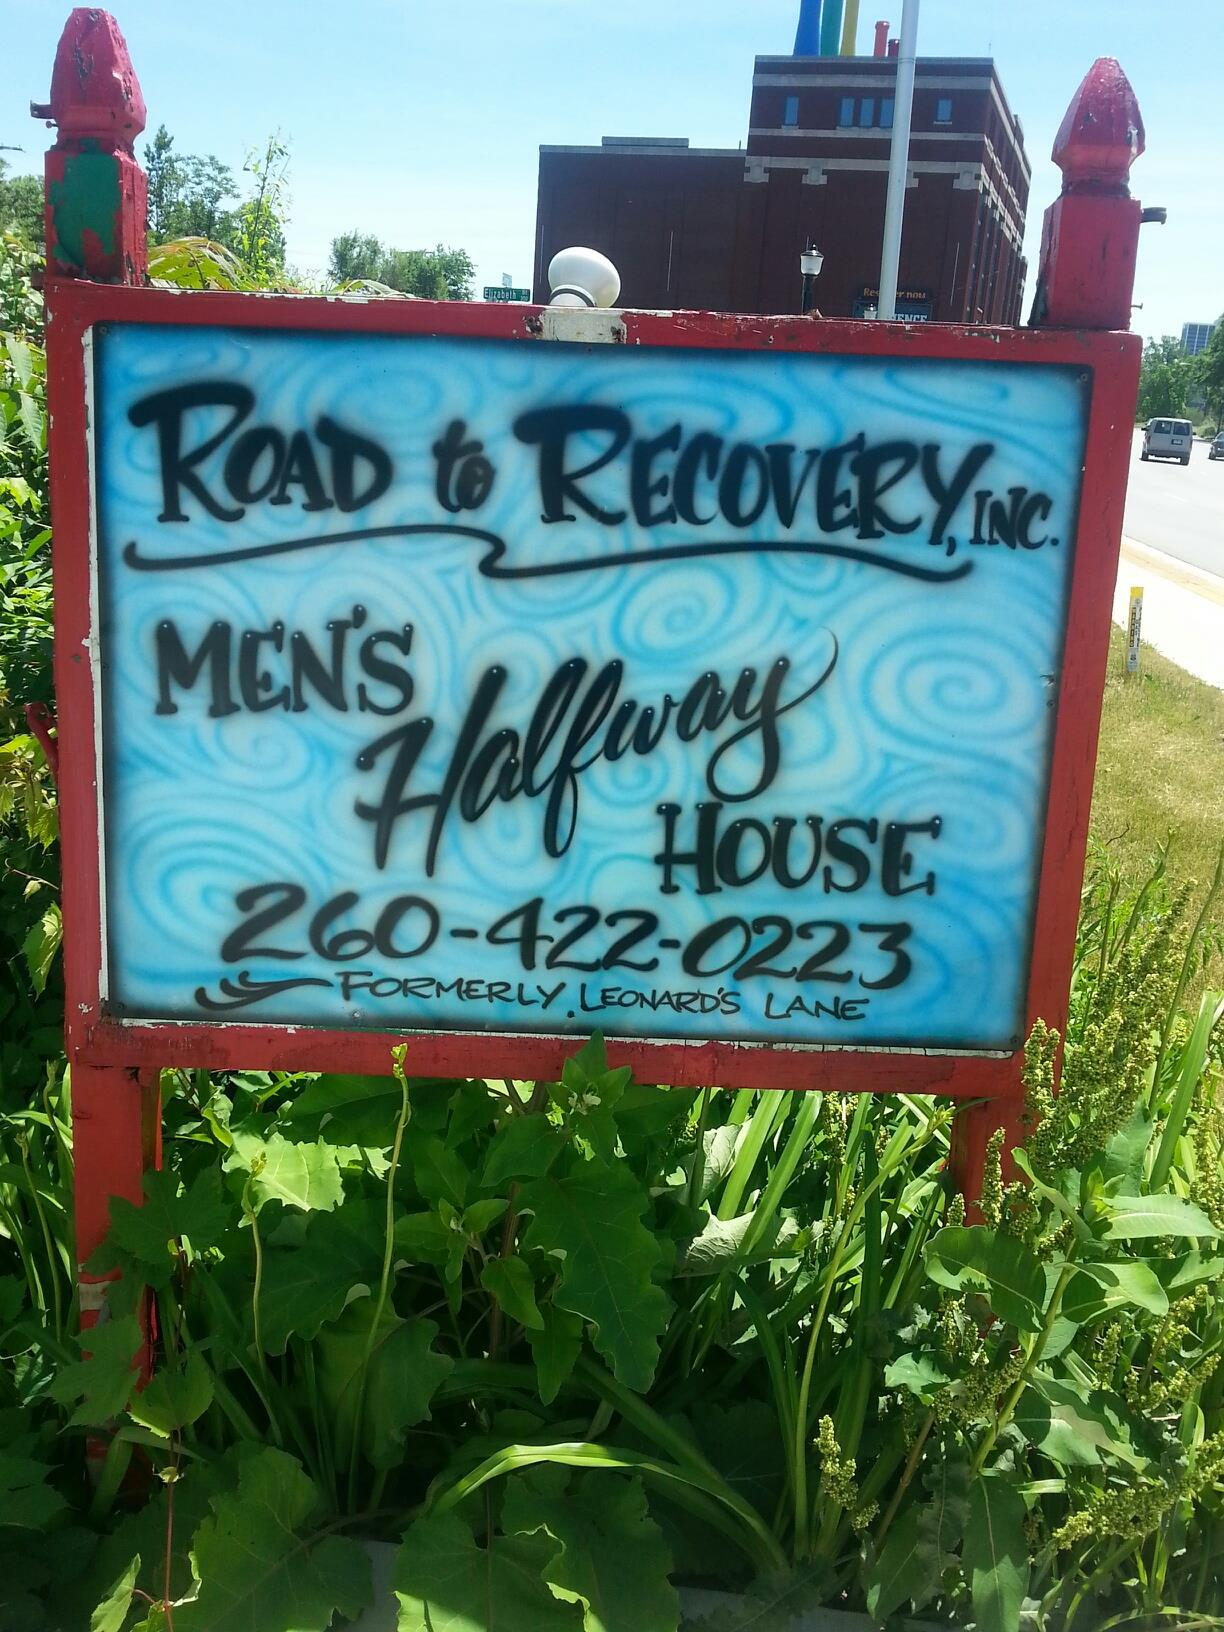 Road to Recovery - Halfway House